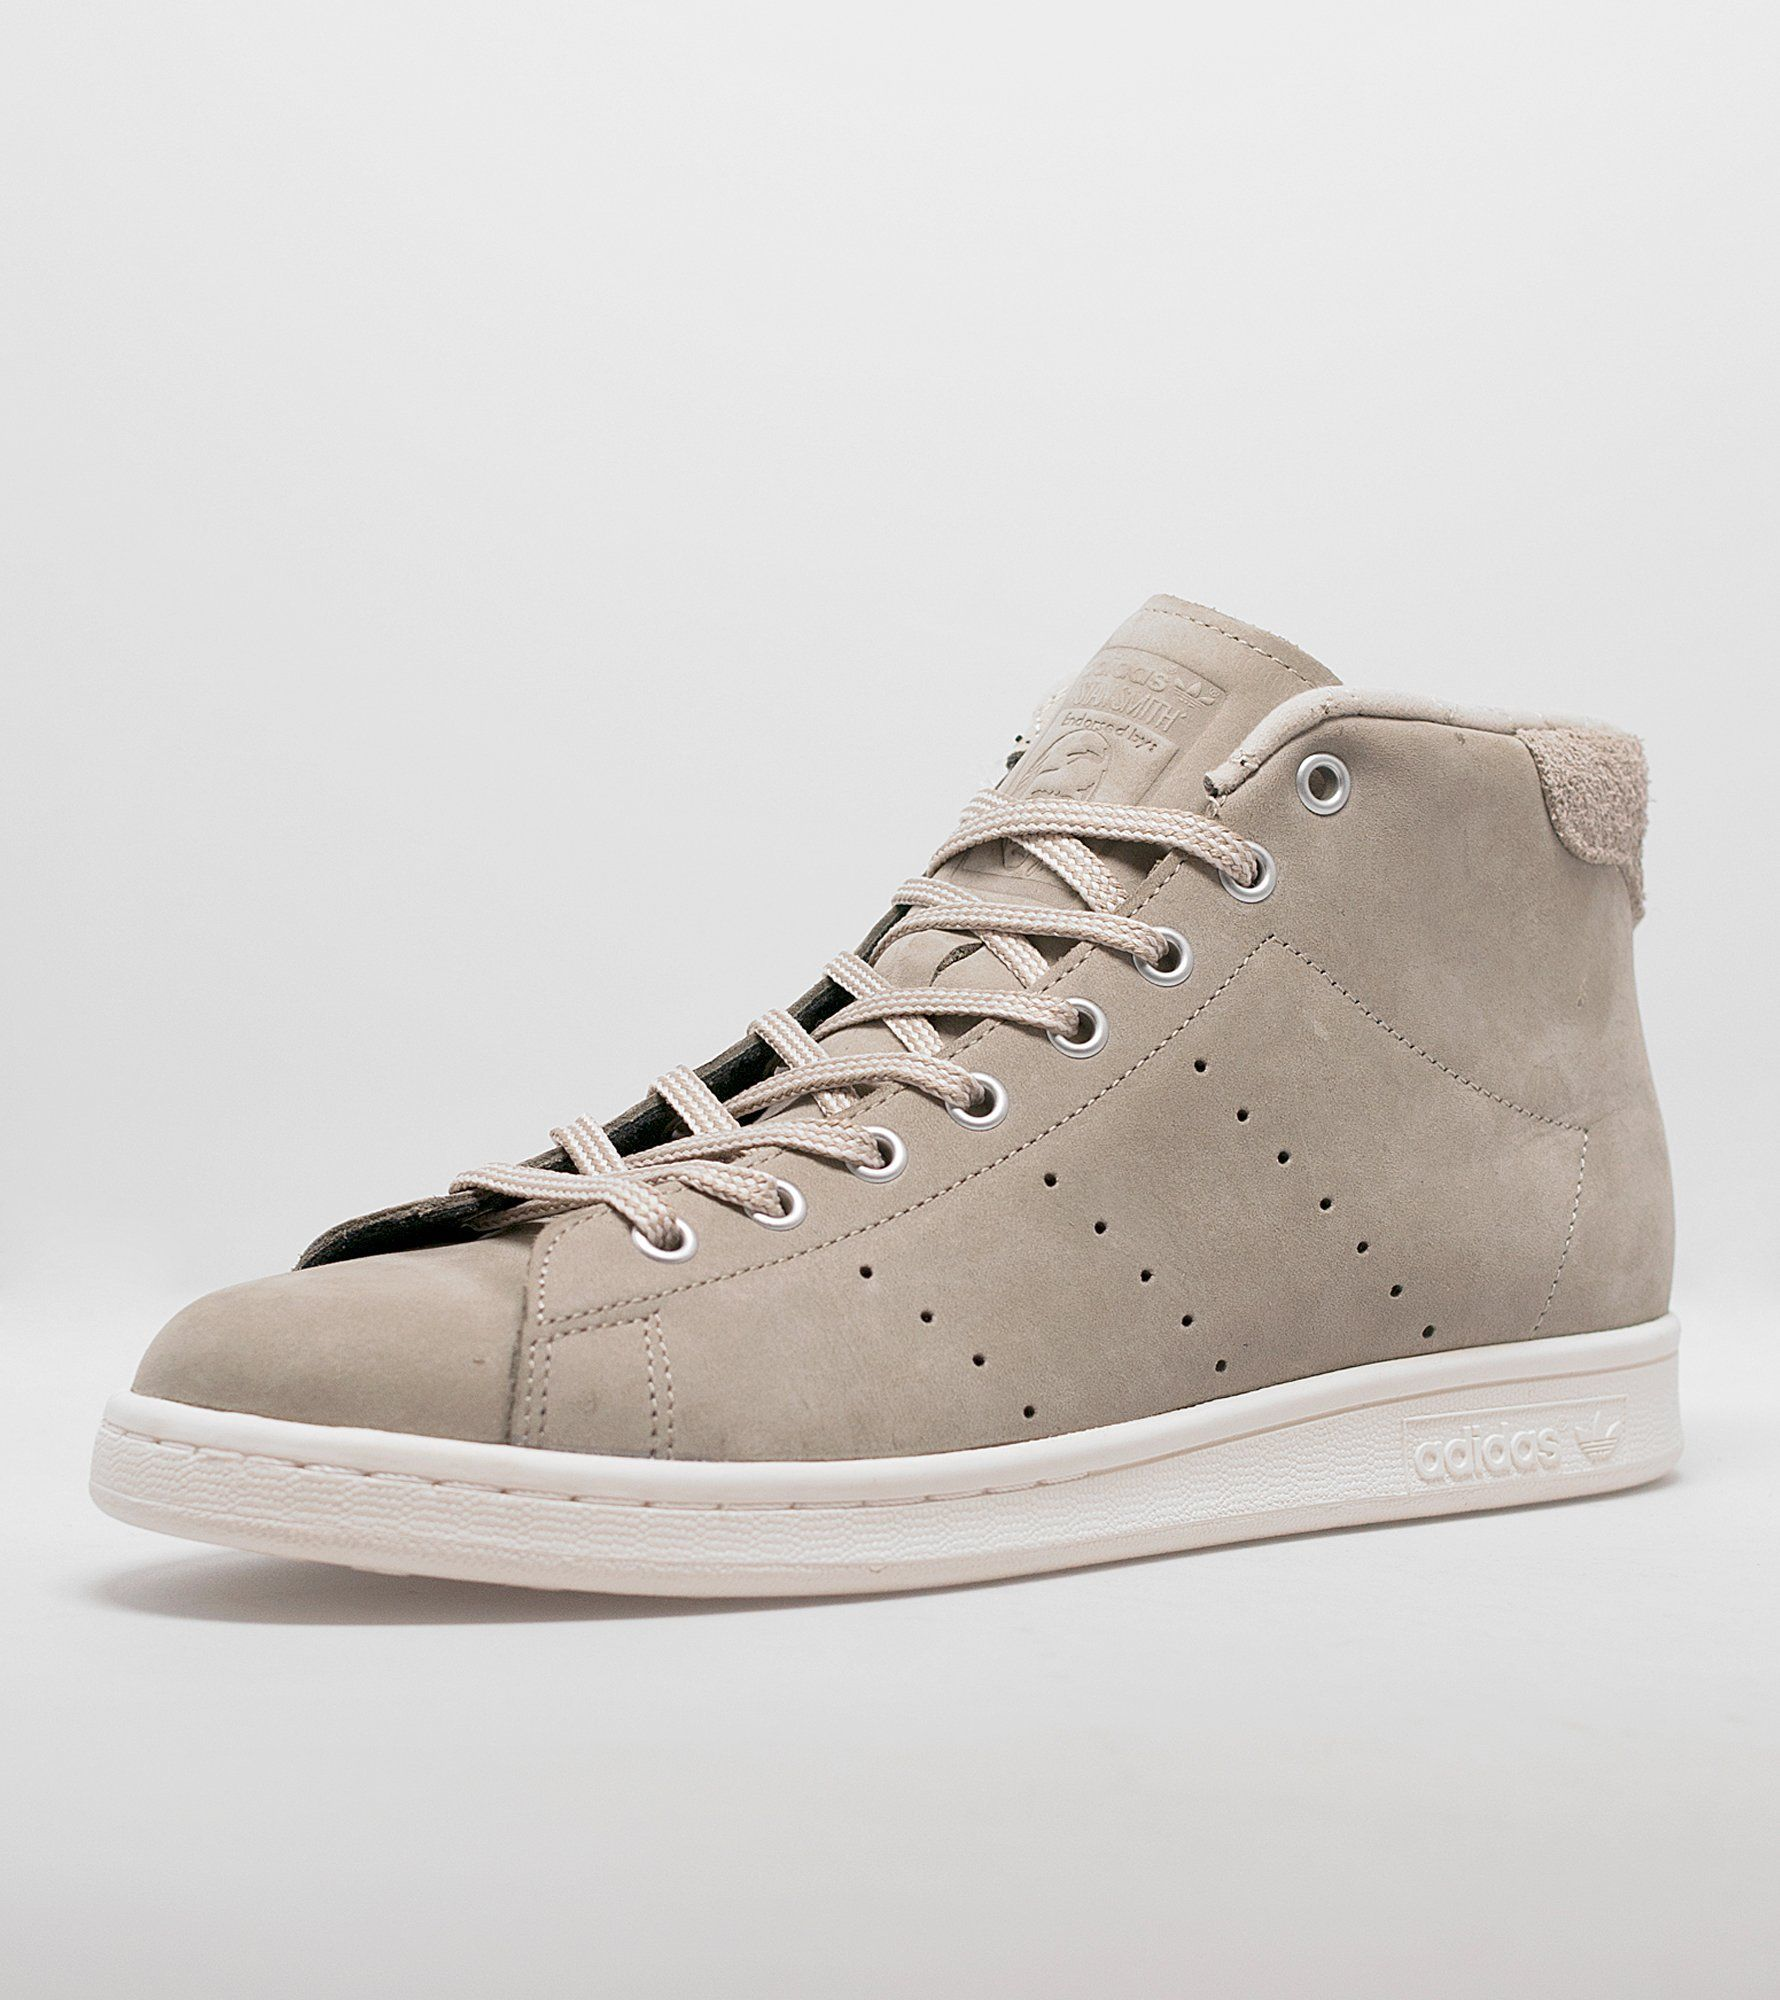 big sale a80c8 67e2e adidas Originals Stan Smith Mid - size  Exclusive - find out more on our  site. Find the freshest in trainers and clothing online now.